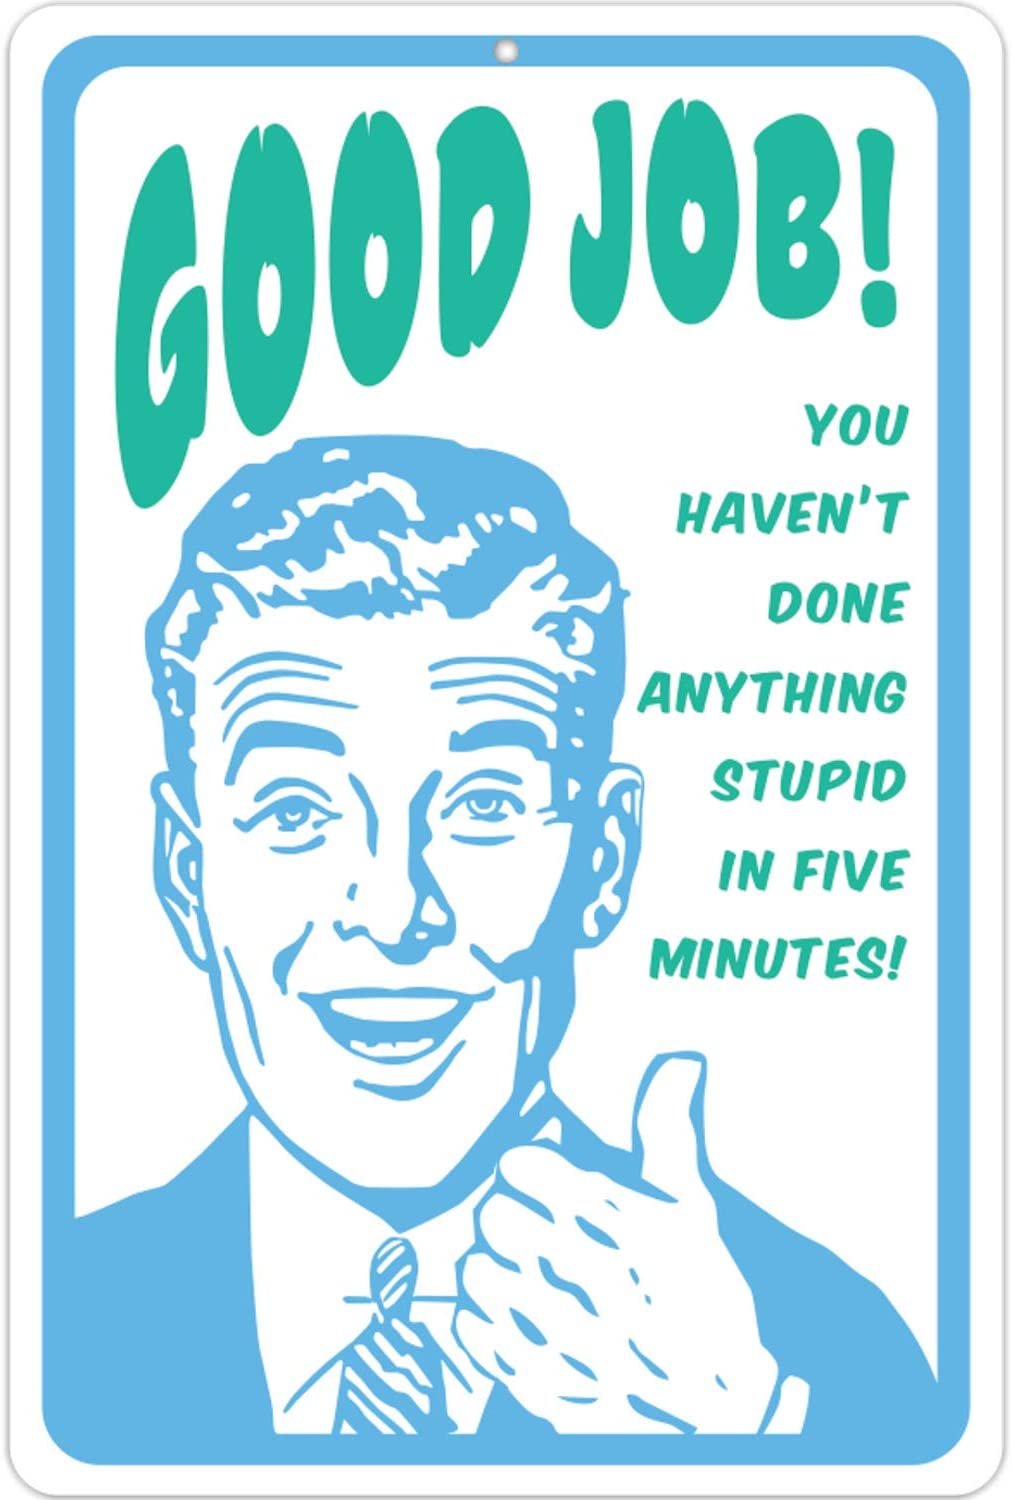 ATX CUSTOM SIGNS - Funny Signs for Office - Good Job! You haven't Done Anything Stupid in Five Minutes! Metal Sign